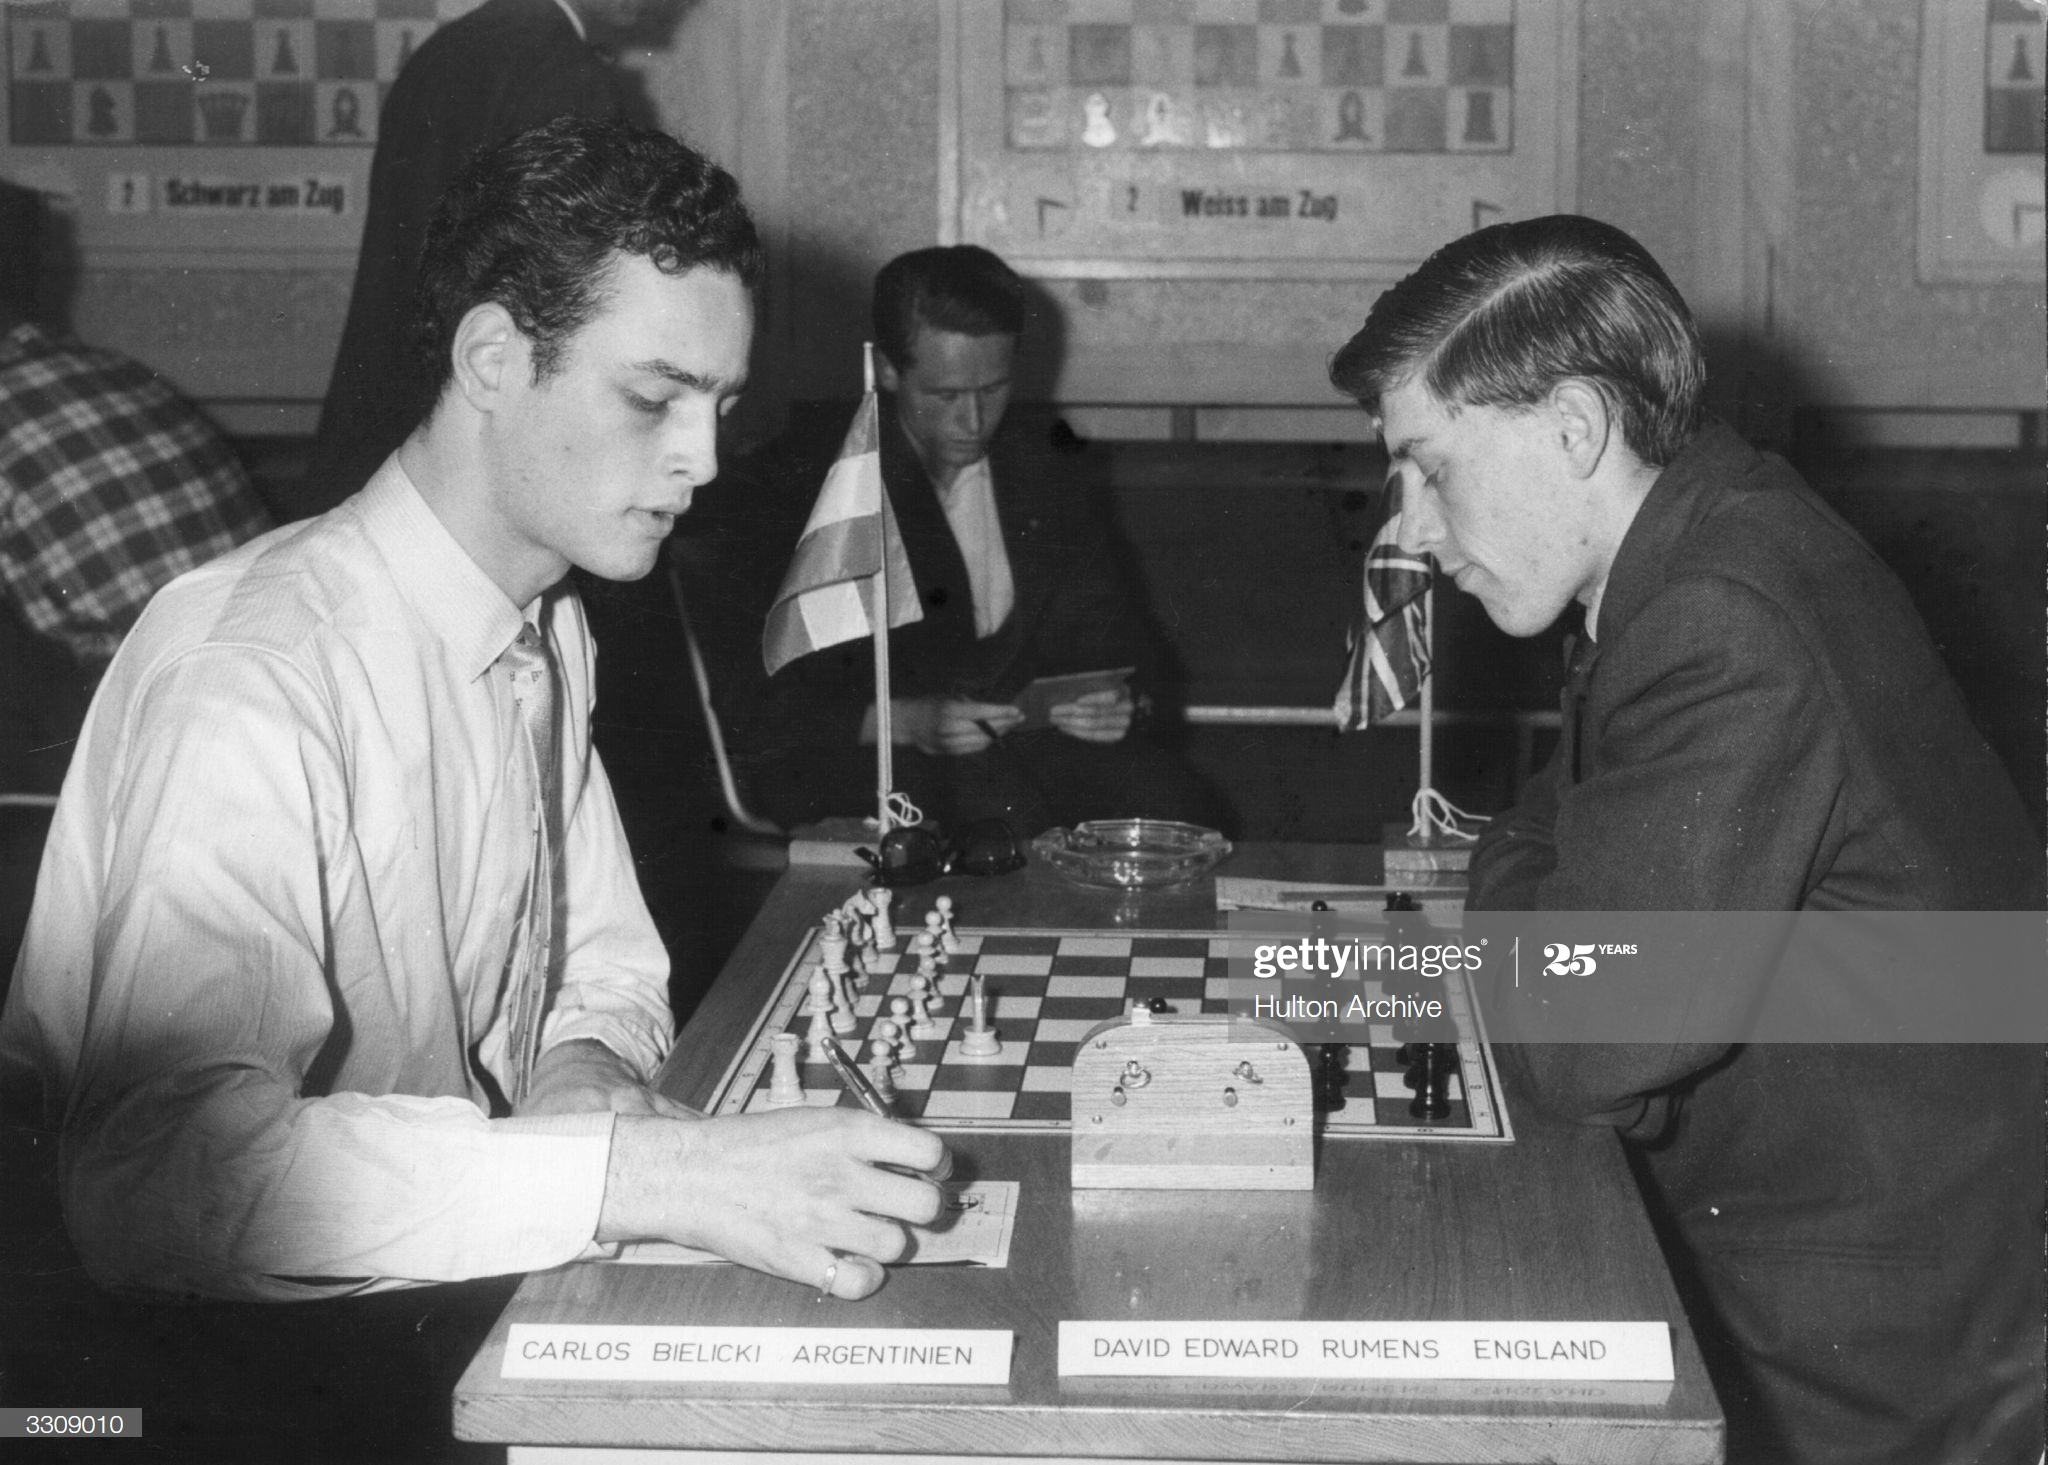 Carlos Bielicki of Argentina (left) beats David Edward Rumens of England in the final game of the 1959 Youth World Chess Championships in Munchenstein. (Photo by Hulton Archive/Getty Images)